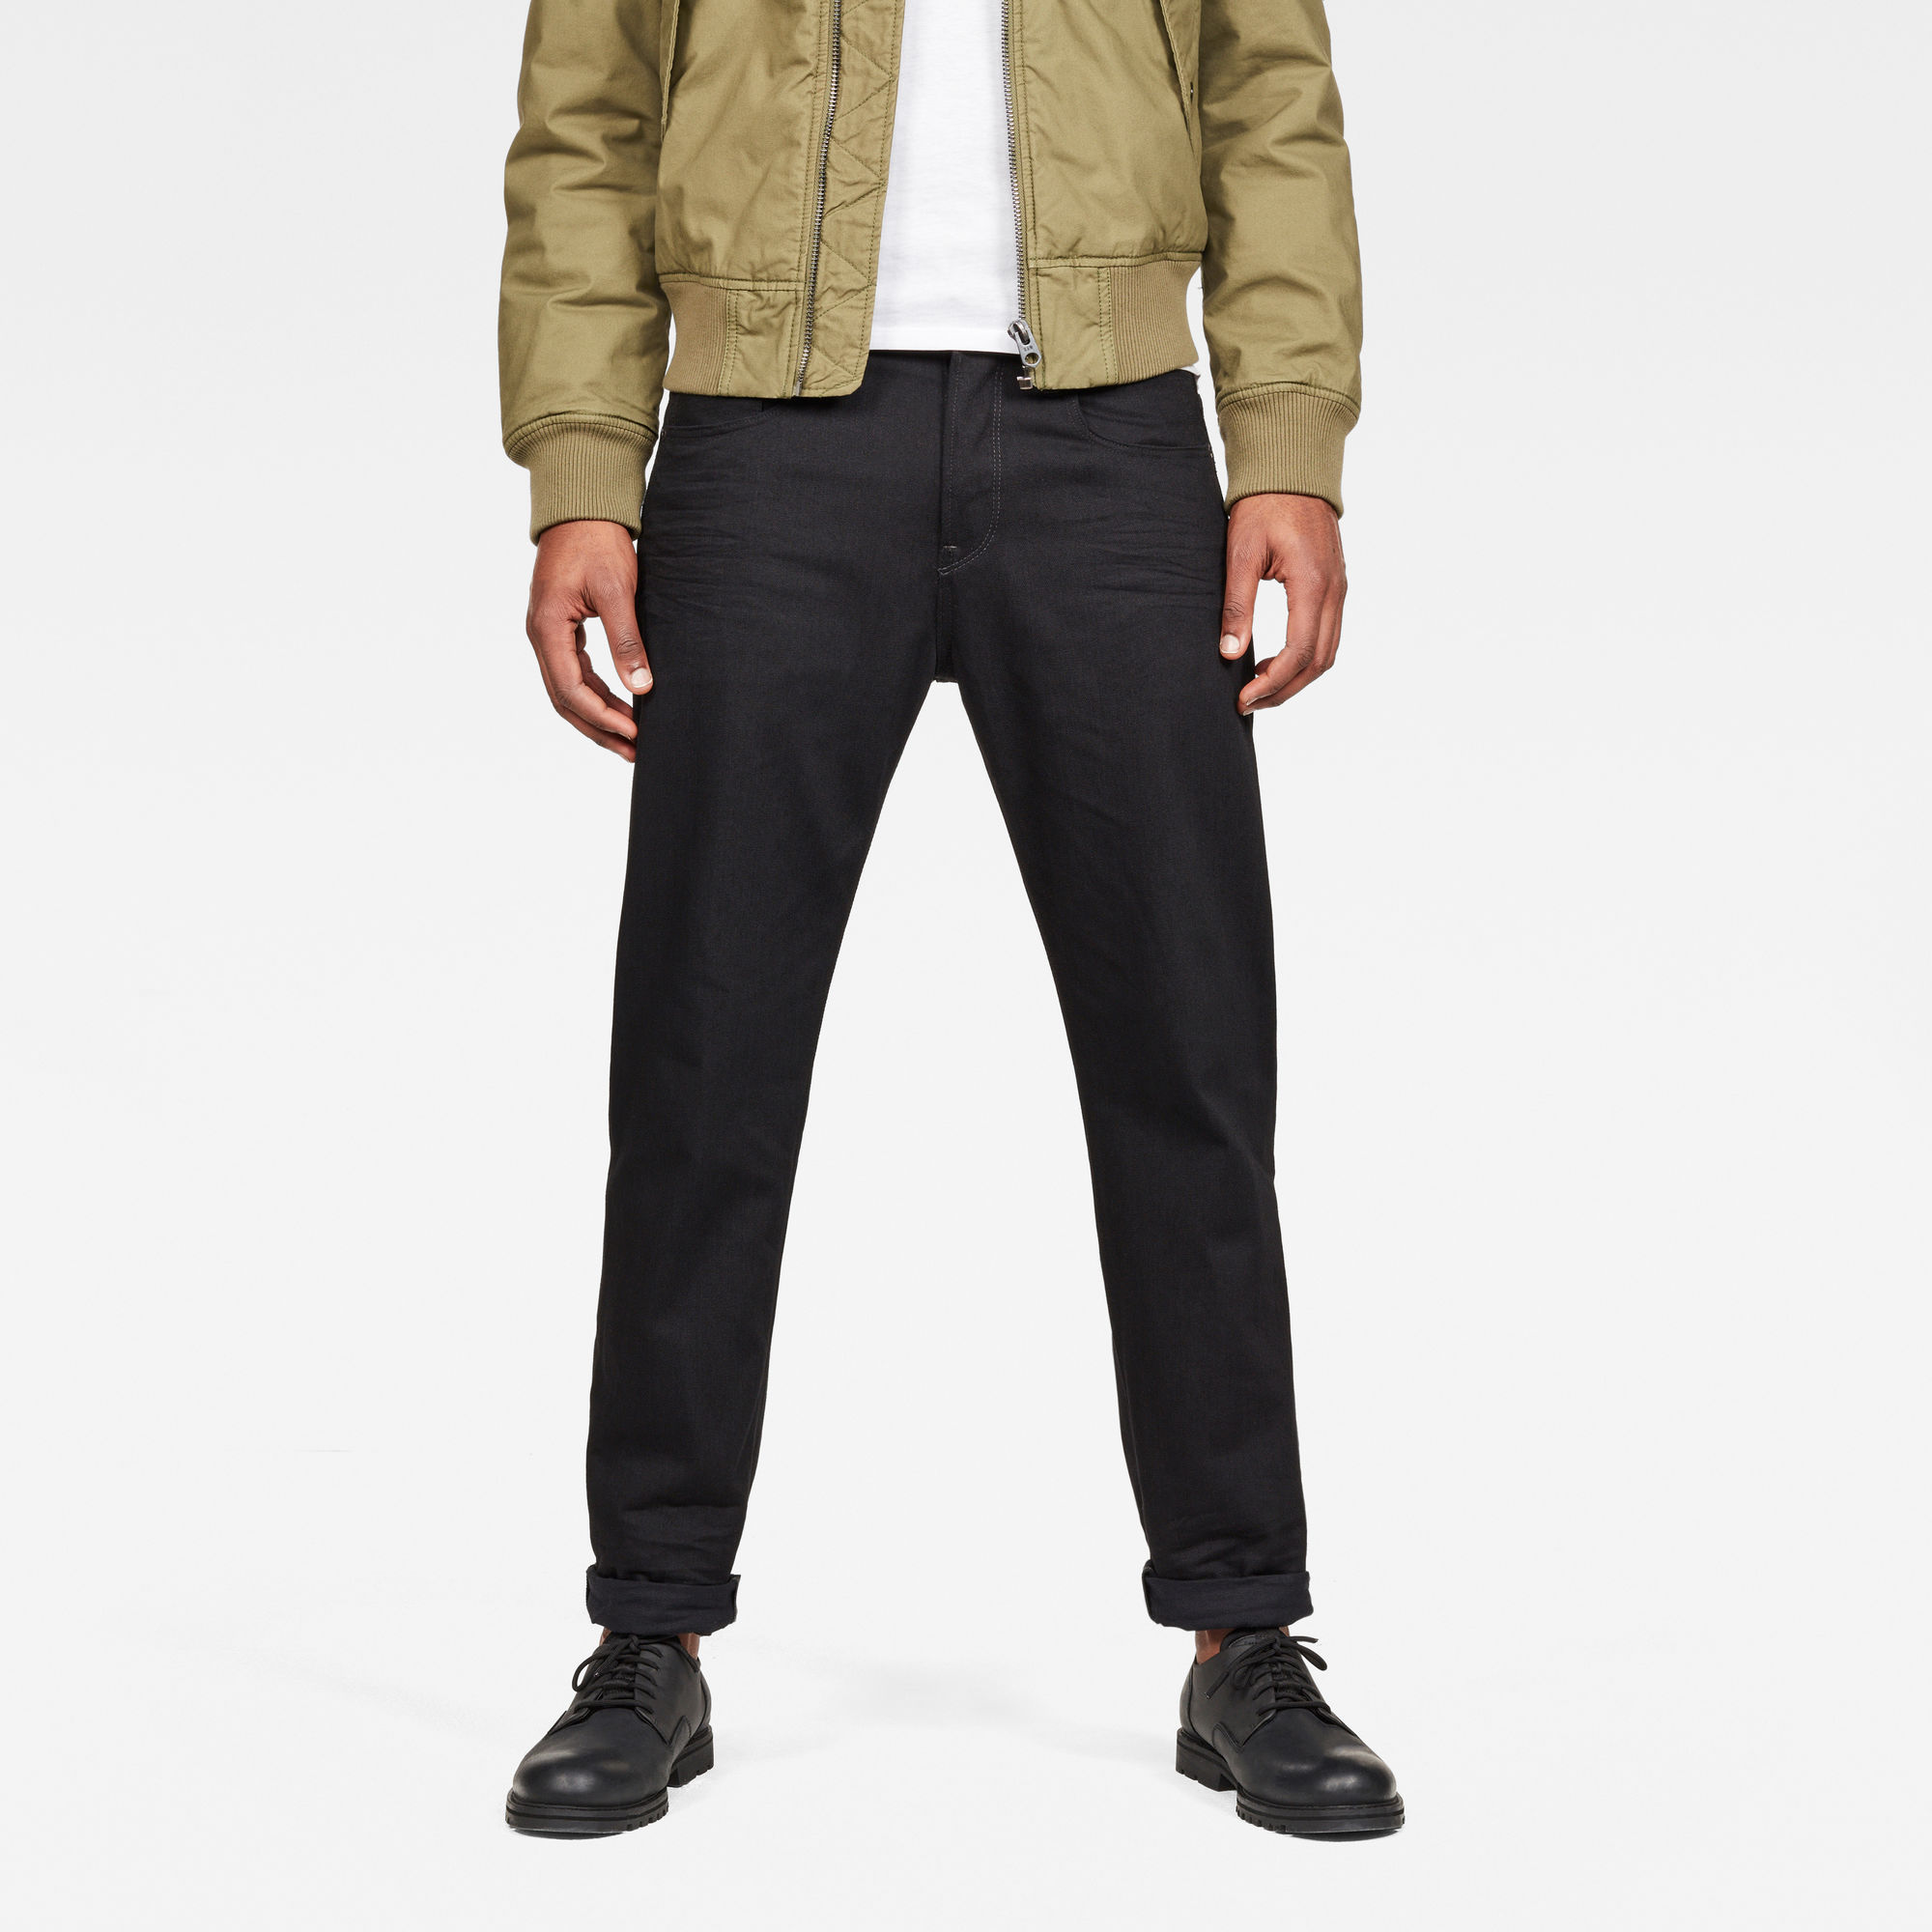 Image of G Star Raw 3301 Relaxed Jeans